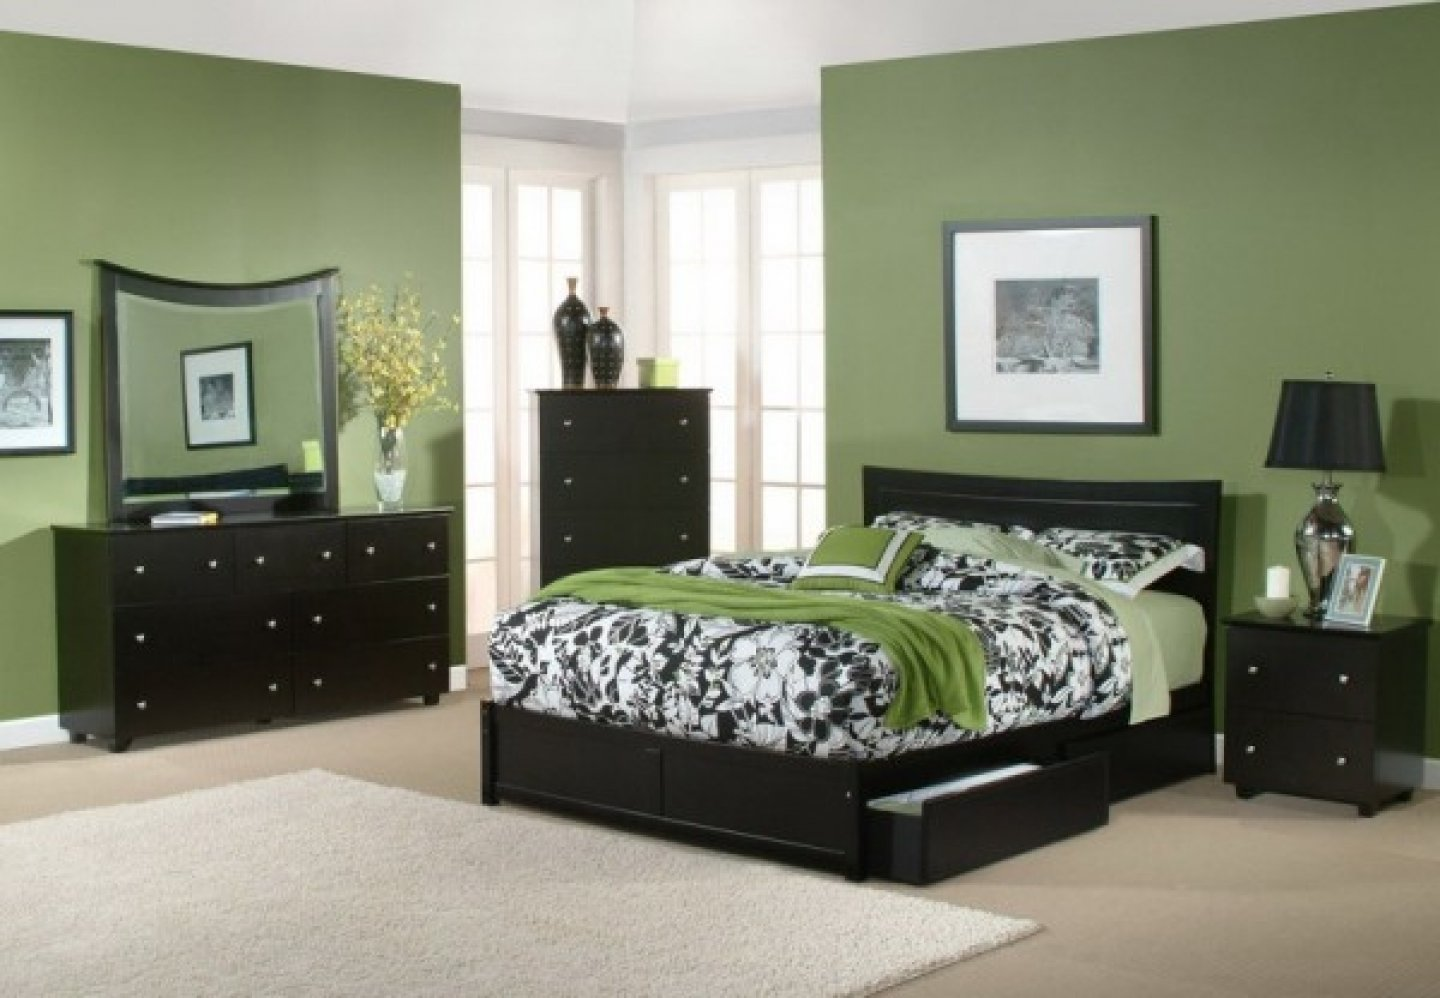 10 Attractive Bedroom Ideas With Black Furniture cool and simple wall colors for bedrooms with dark furniture 2021